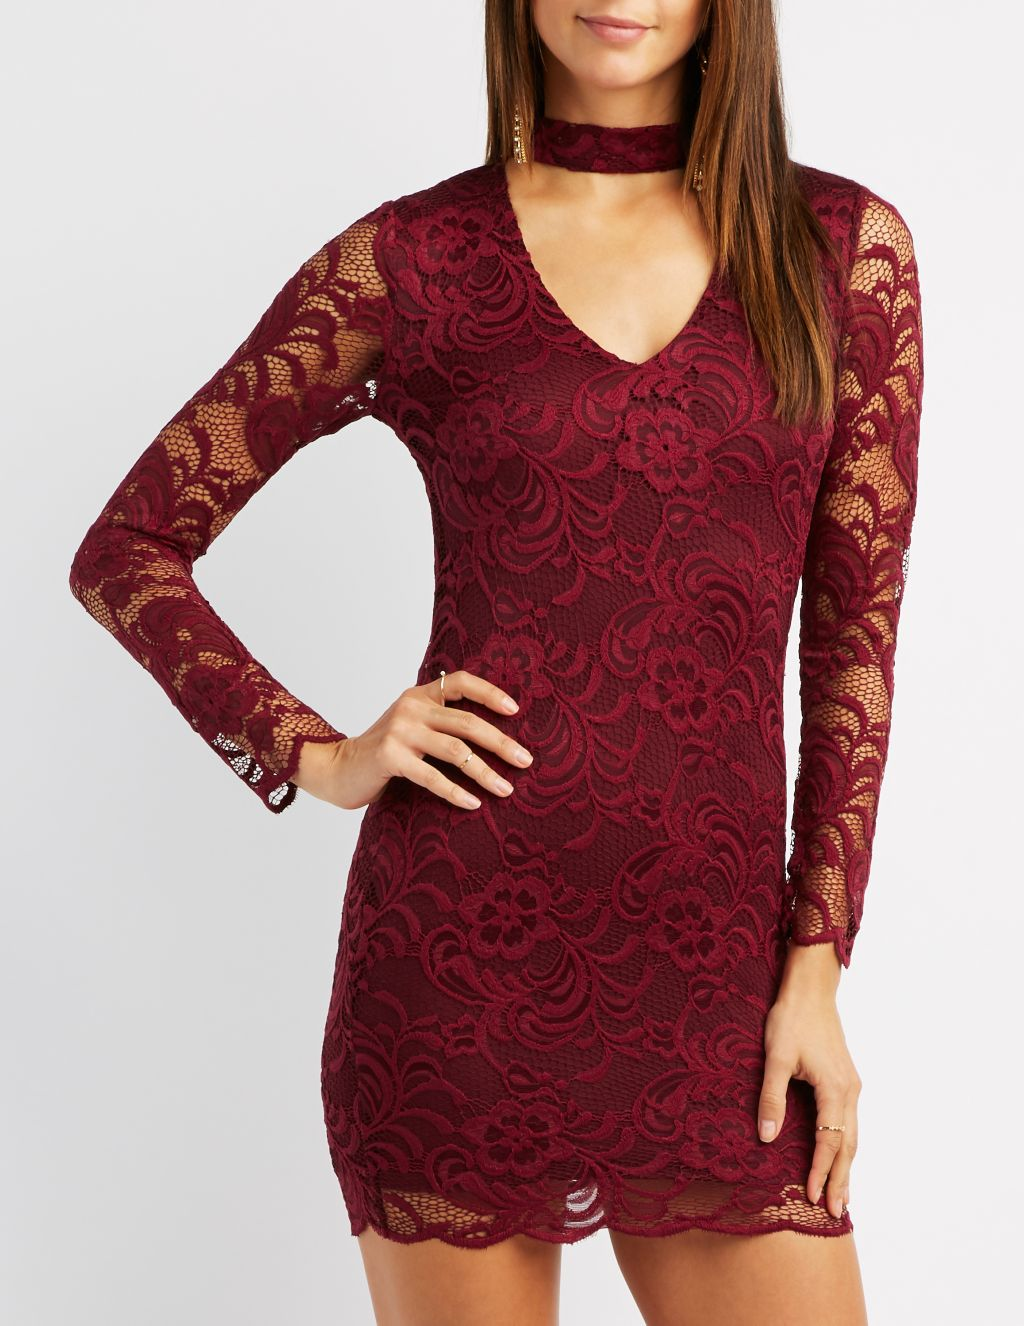 A cute red holiday dress like this one is perfect for your next party!